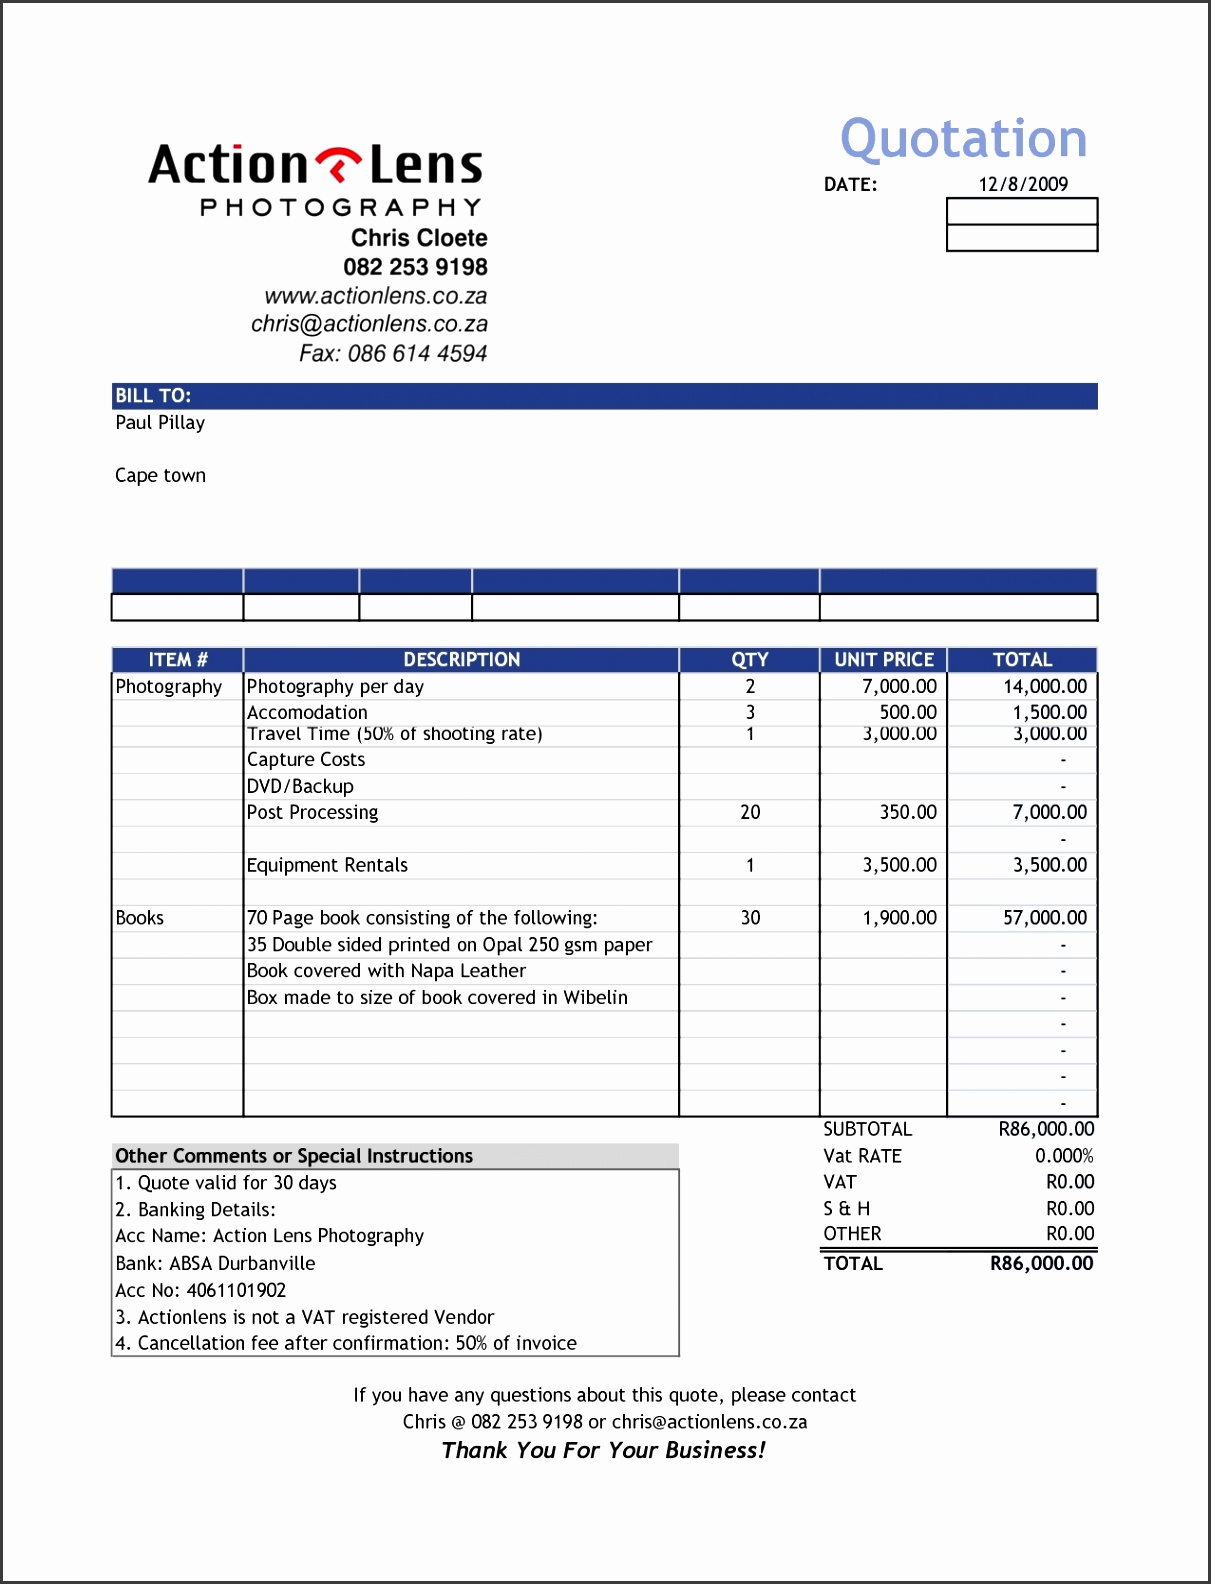 sale invoice format invoice template free 2016 sale invoice format in excel free